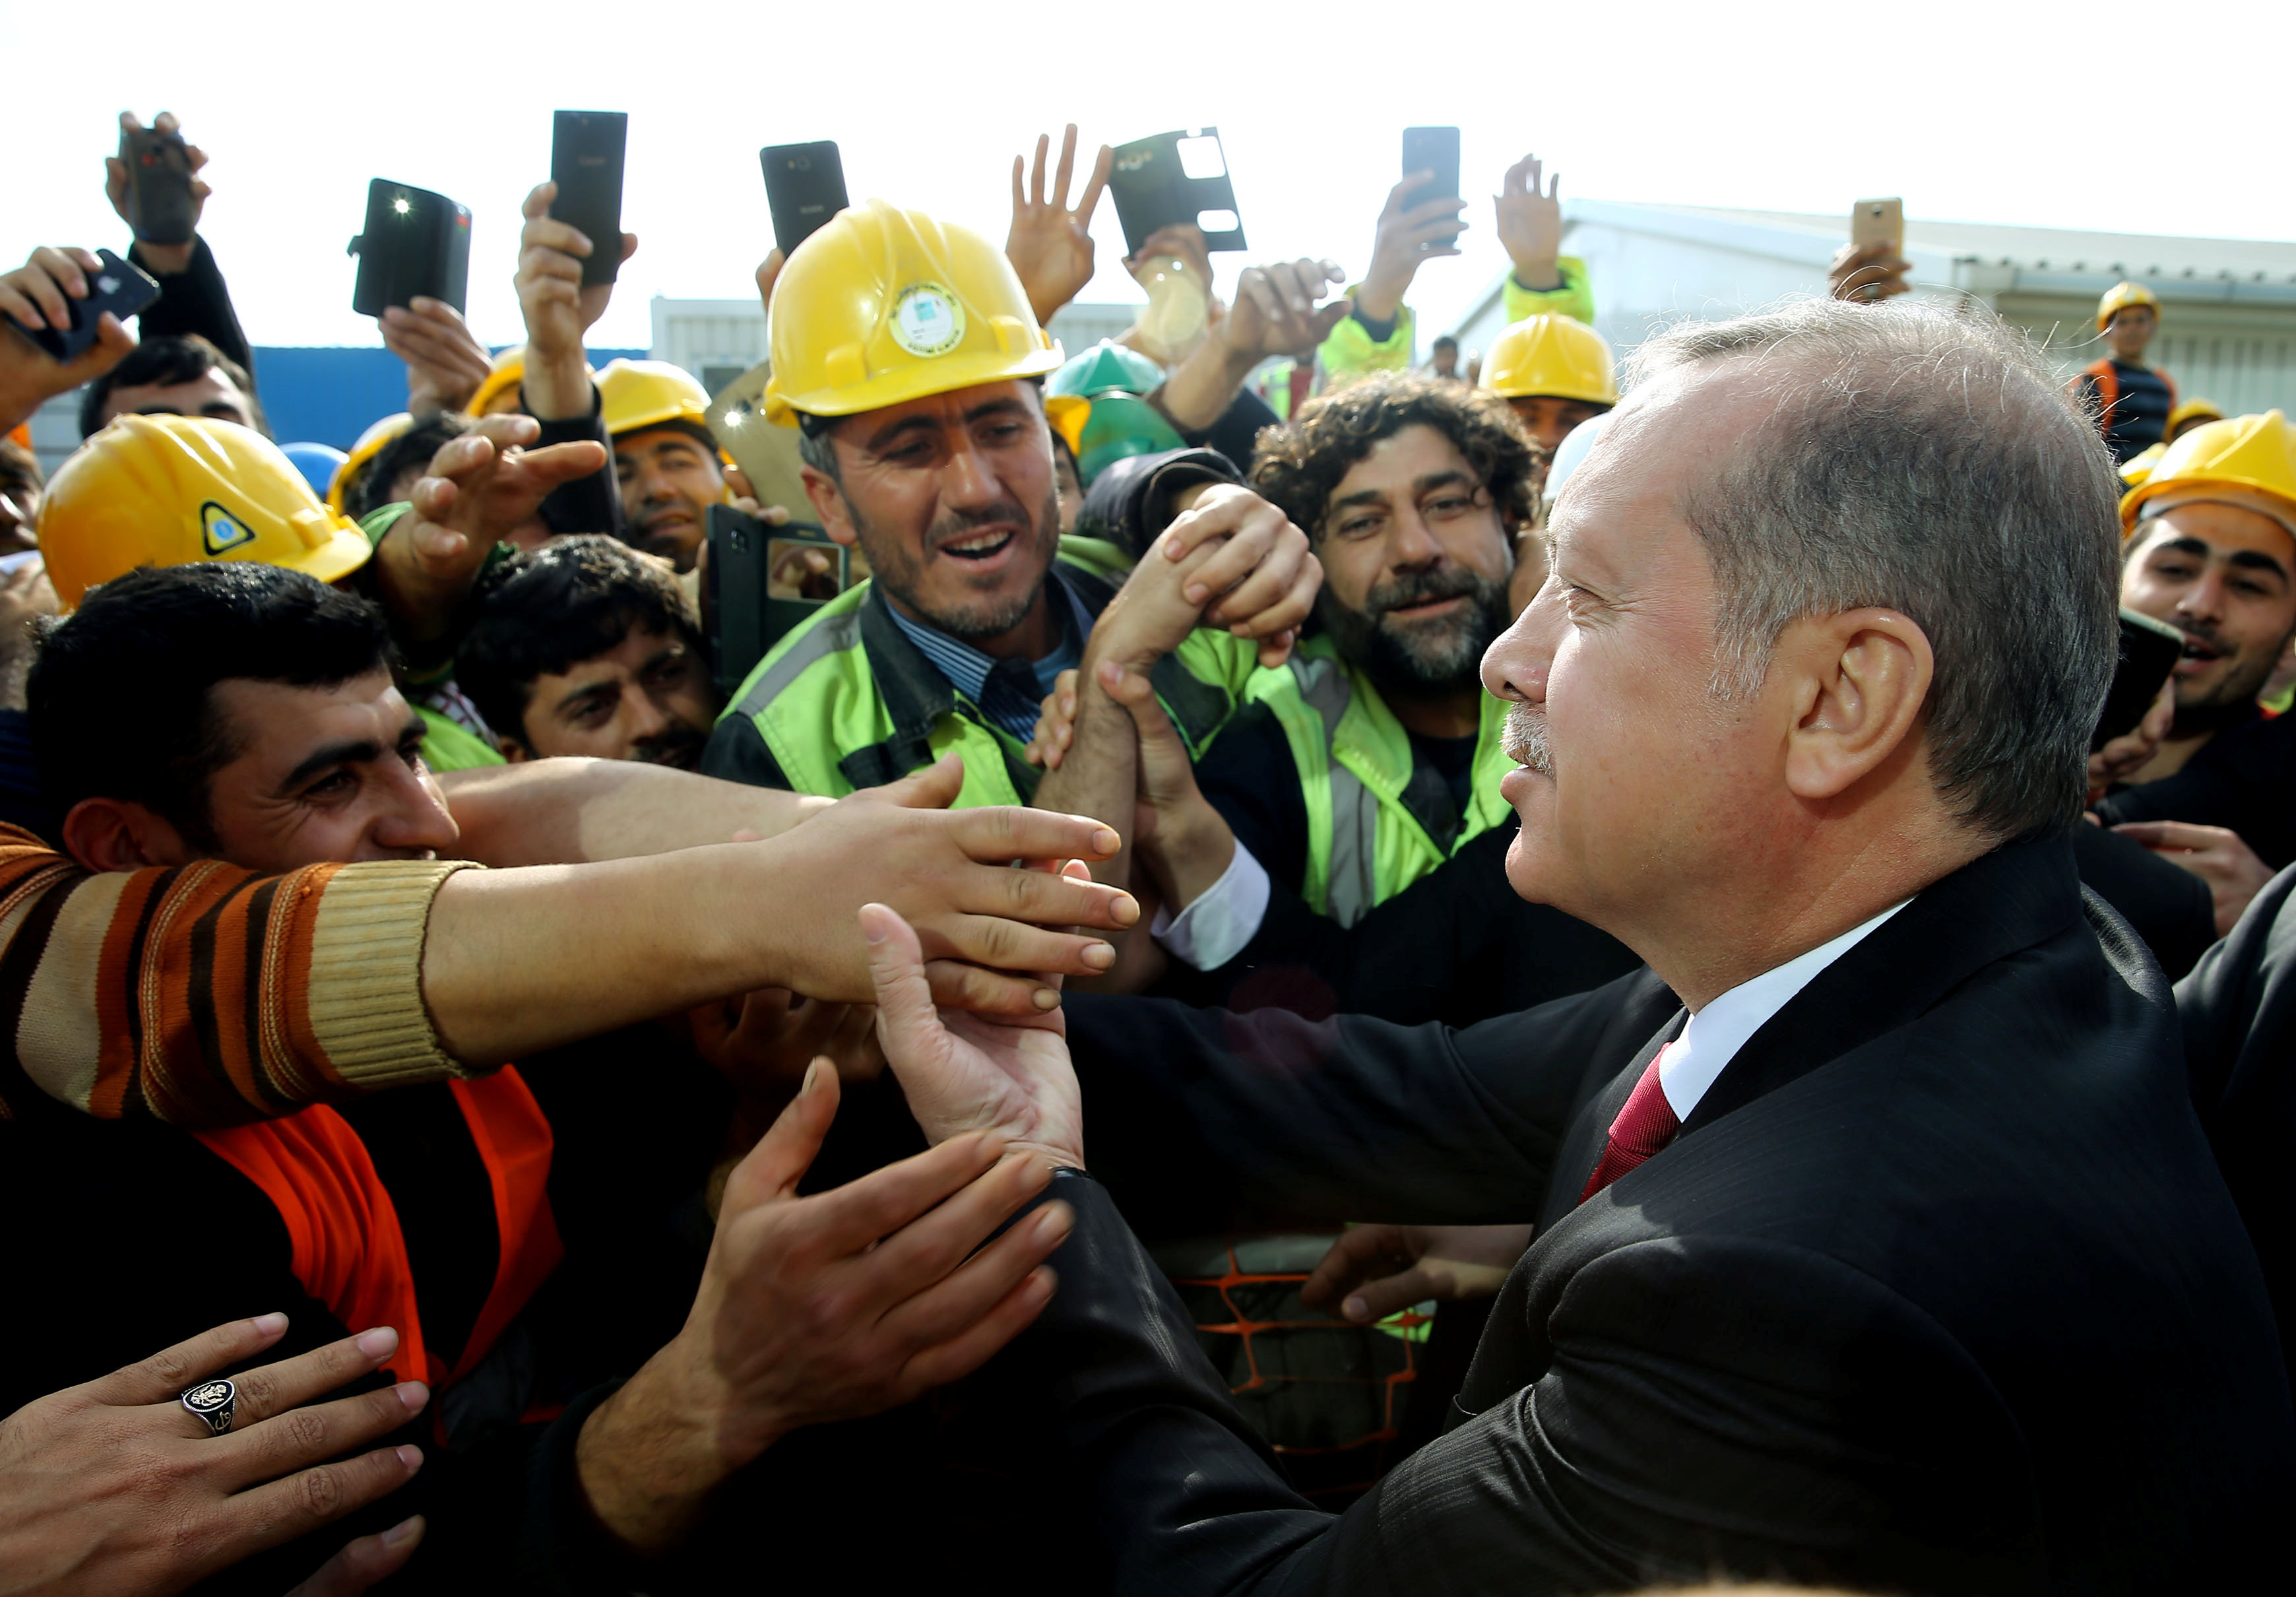 Turkish President Tayyip Erdogan meets with workers during his visit to the construction site of the city's third airport in Istanbul, Turkey May 9, 2016.